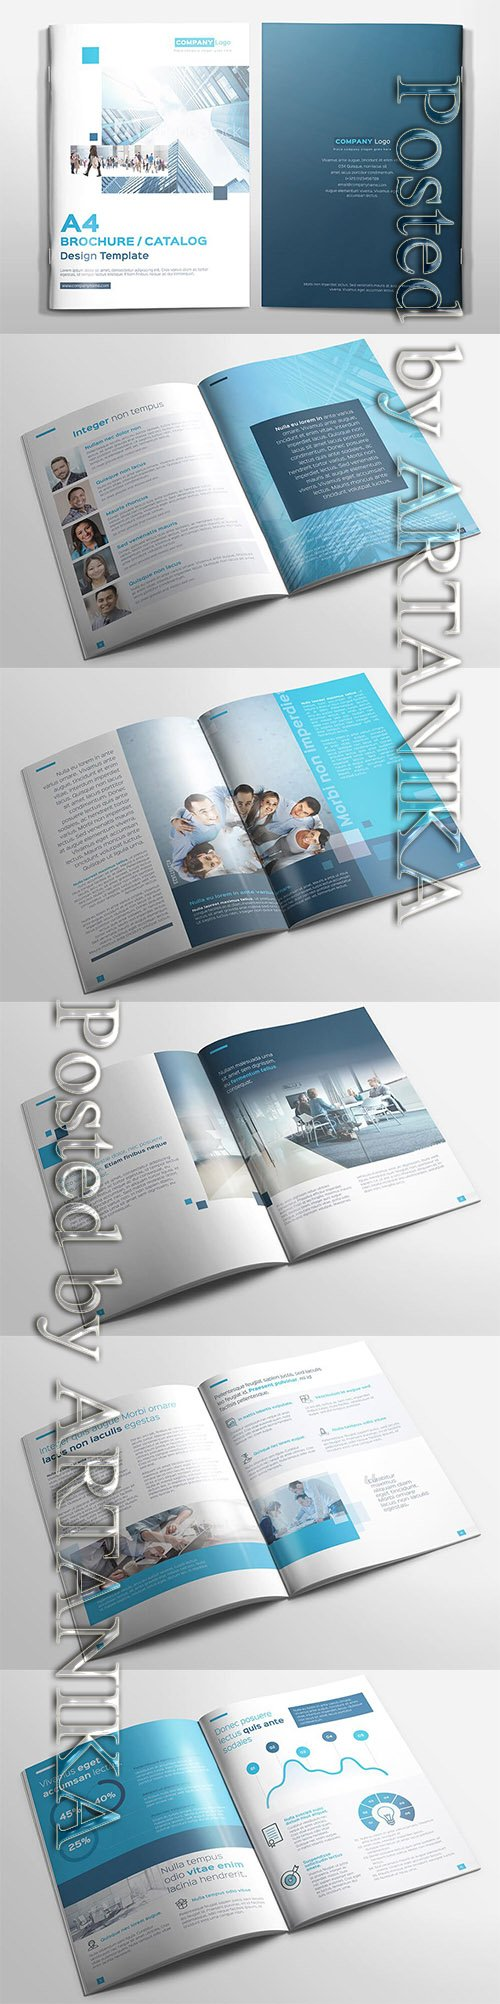 Multipurpose A4 Brochure Catalog 3609716